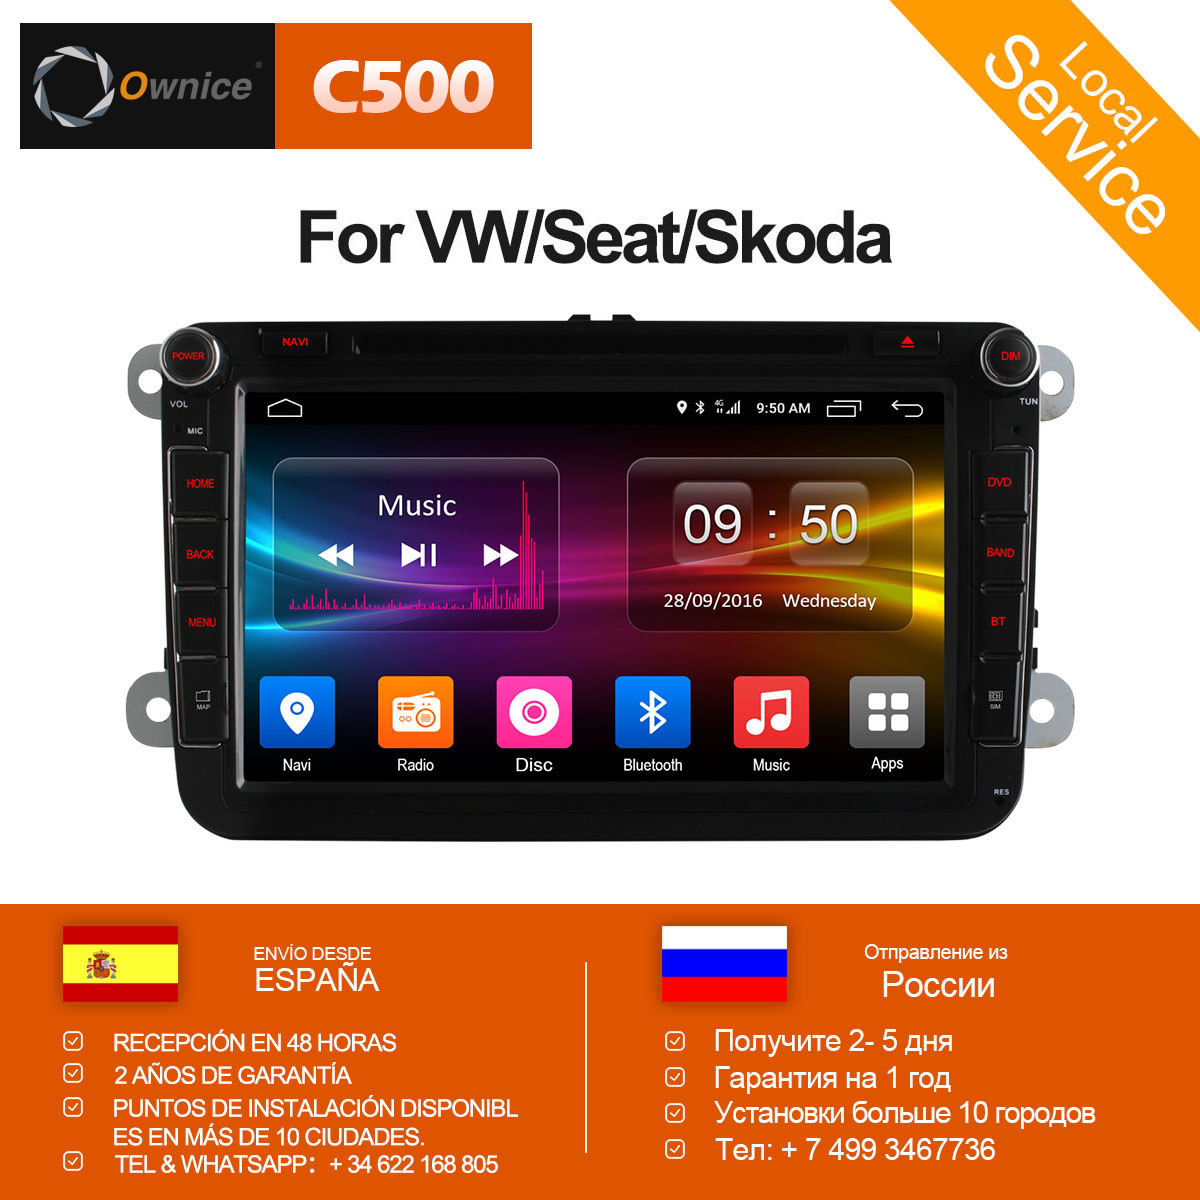 4G SIM LTE Network Ownice C500 G10 Octa 8 Core Android 8.1 2G RAM 2 Din Car DVD GPS Navi Radio Player For VW Skoda Octavia 2 ownice c500 g10 android 8 1 for suzuki swift 2018 octa core 2g ram 32g rom 8 core car dvd player gps car rds radio wifi 4g lte